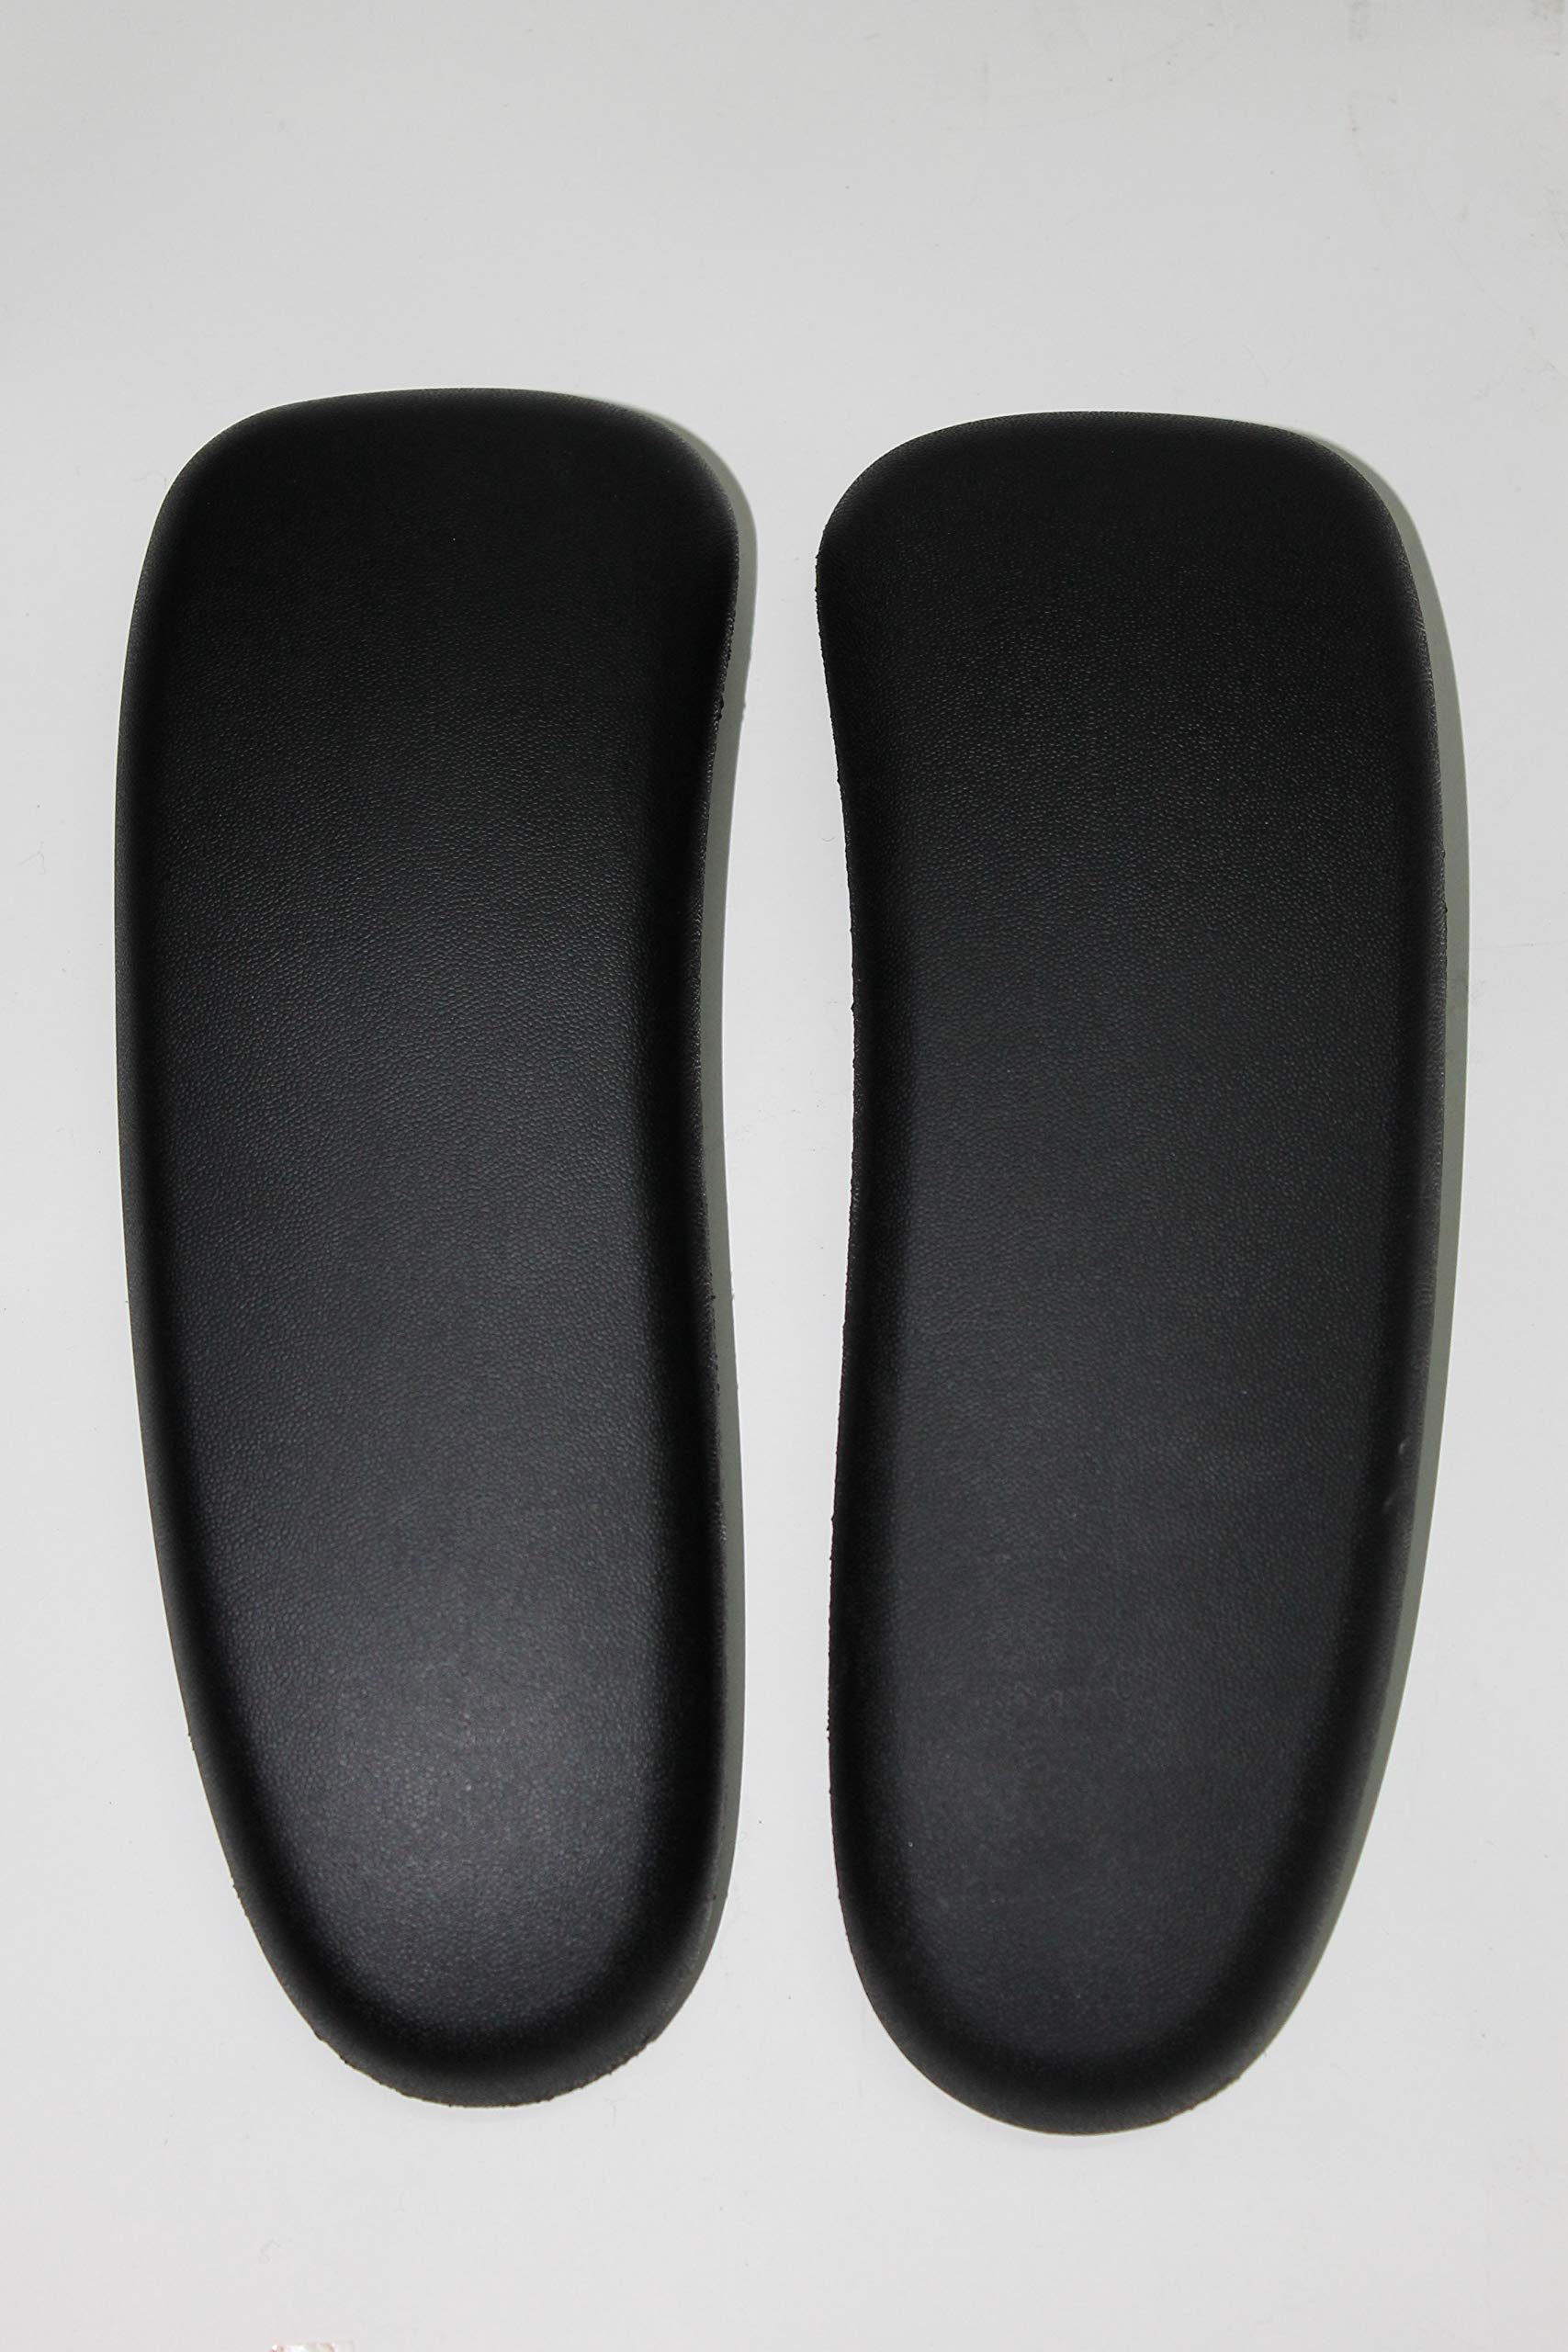 Arm Pads Pad Black Vinyl for Herman Miller Aeron Classic Pair